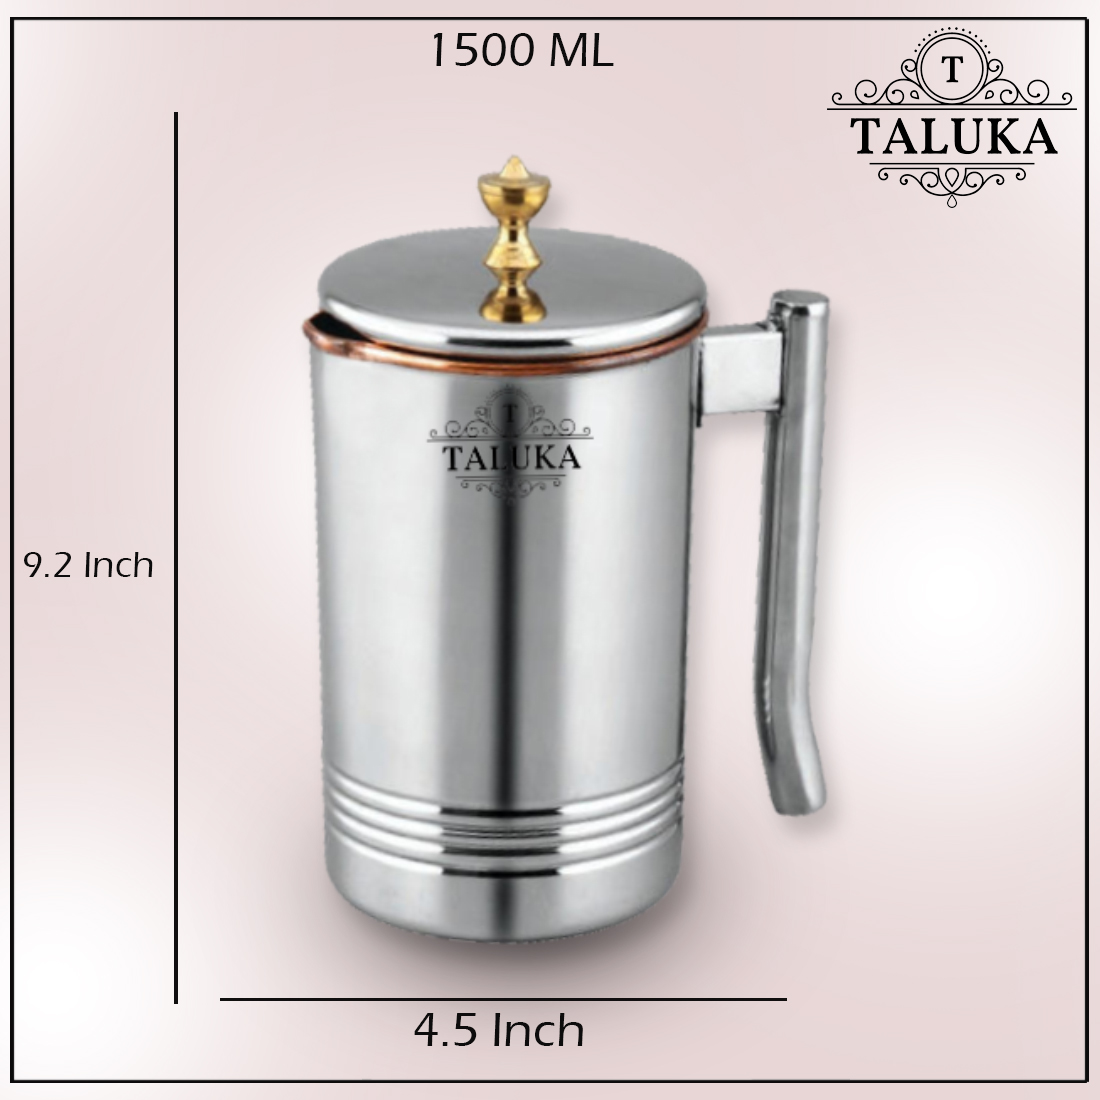 Copper Stainless Steel Jug With Brass Knob Lid Water Restaurant Hotel Ware Home Garden Kitchen Dinning